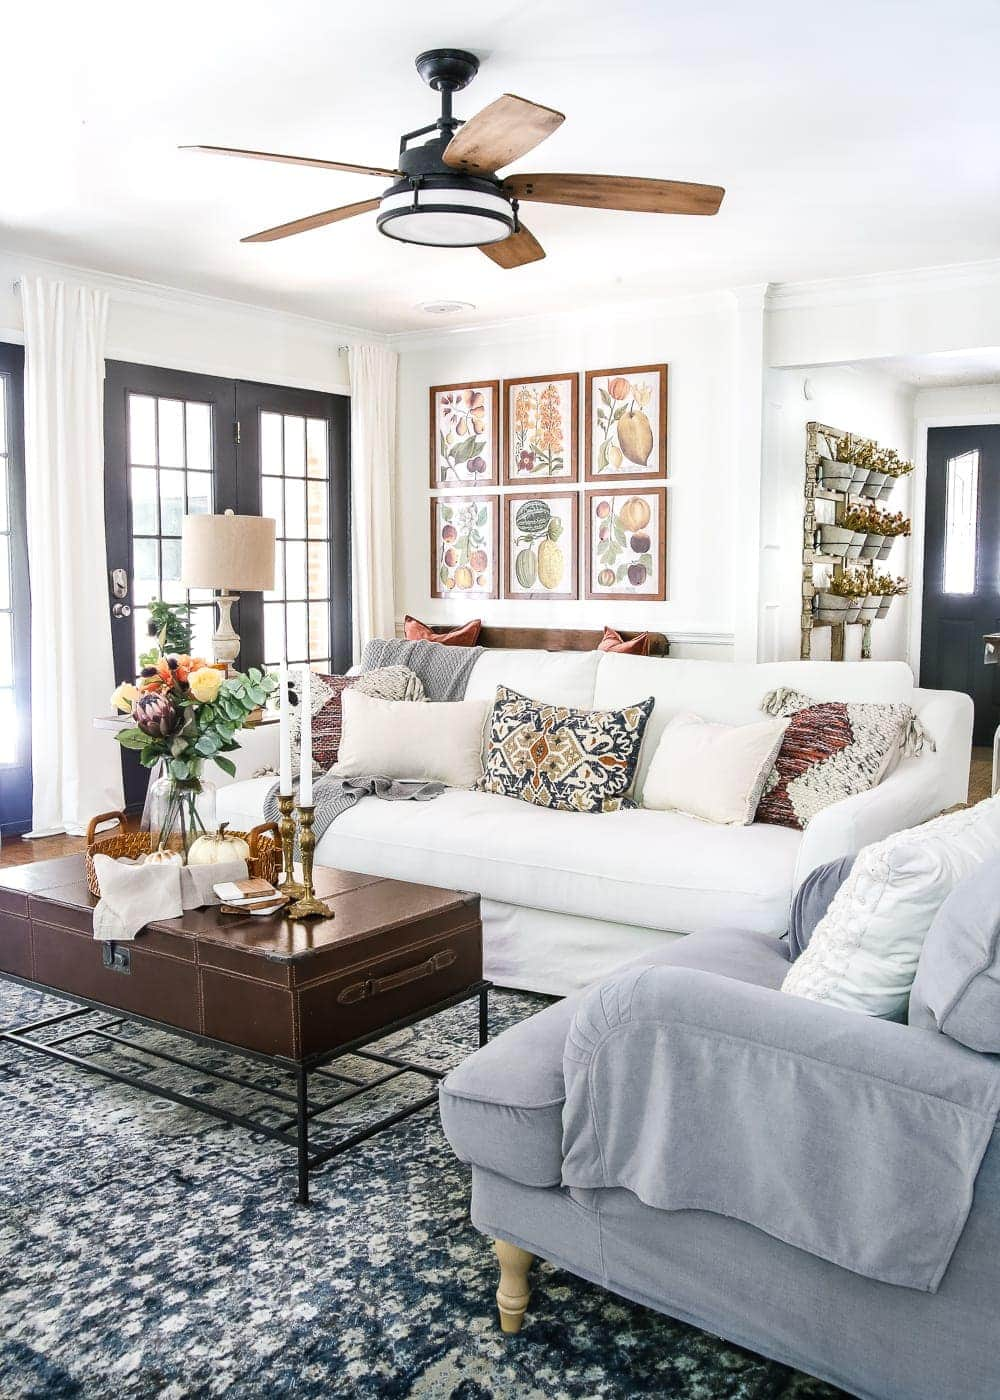 8 Fall Decorating Tips For A Budget And Fall Home Tour 2017